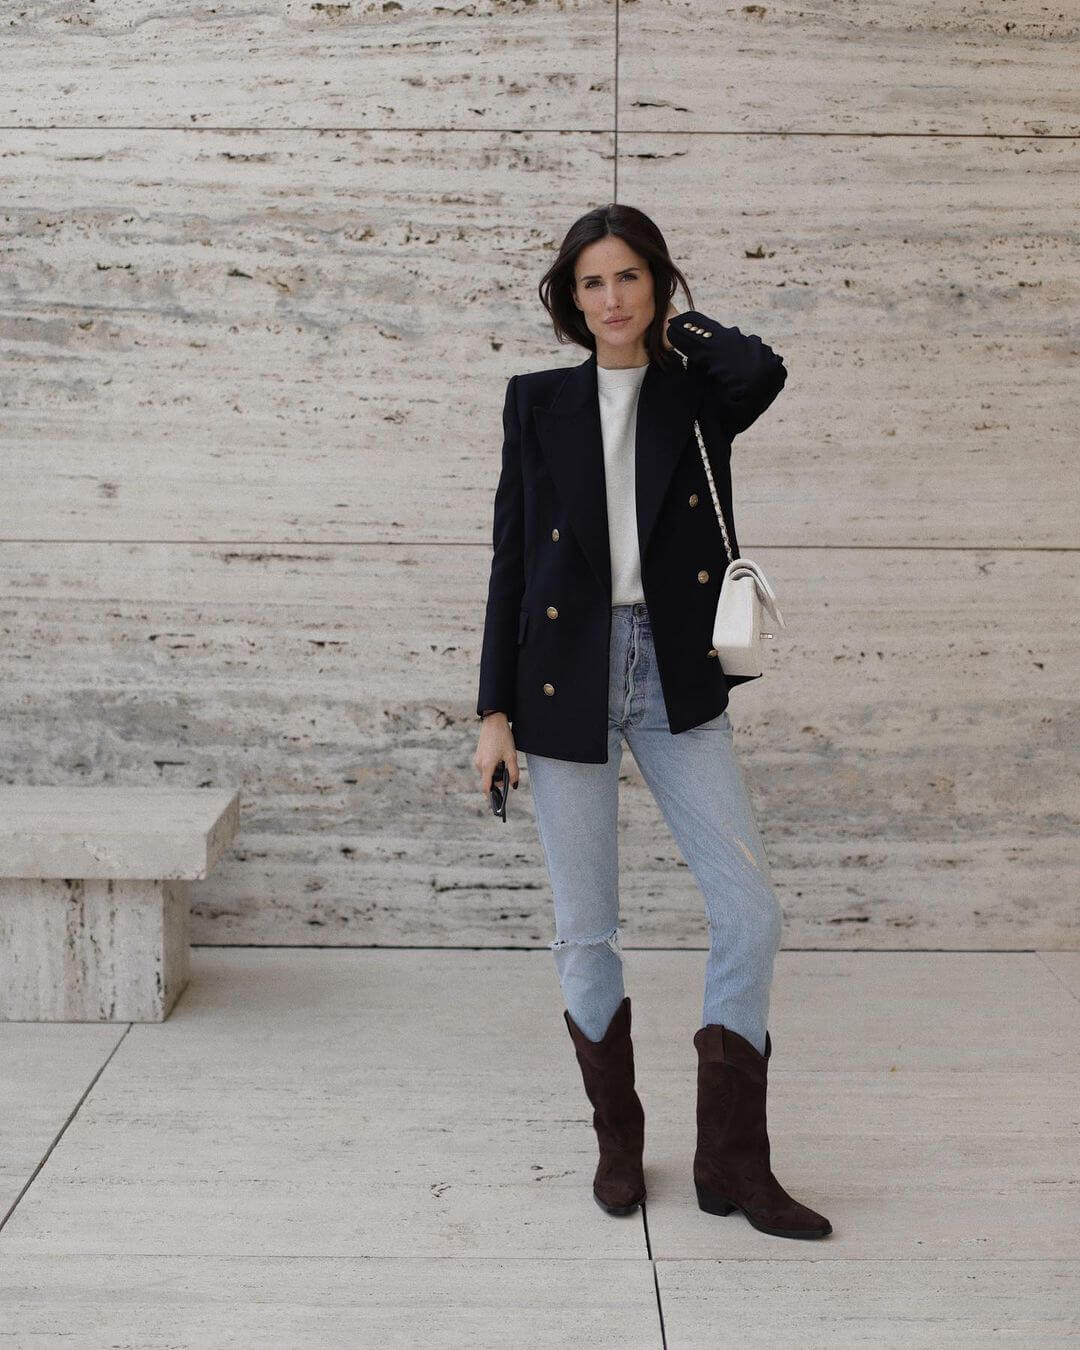 We Love This Updated Take On Jeans And A Blazer